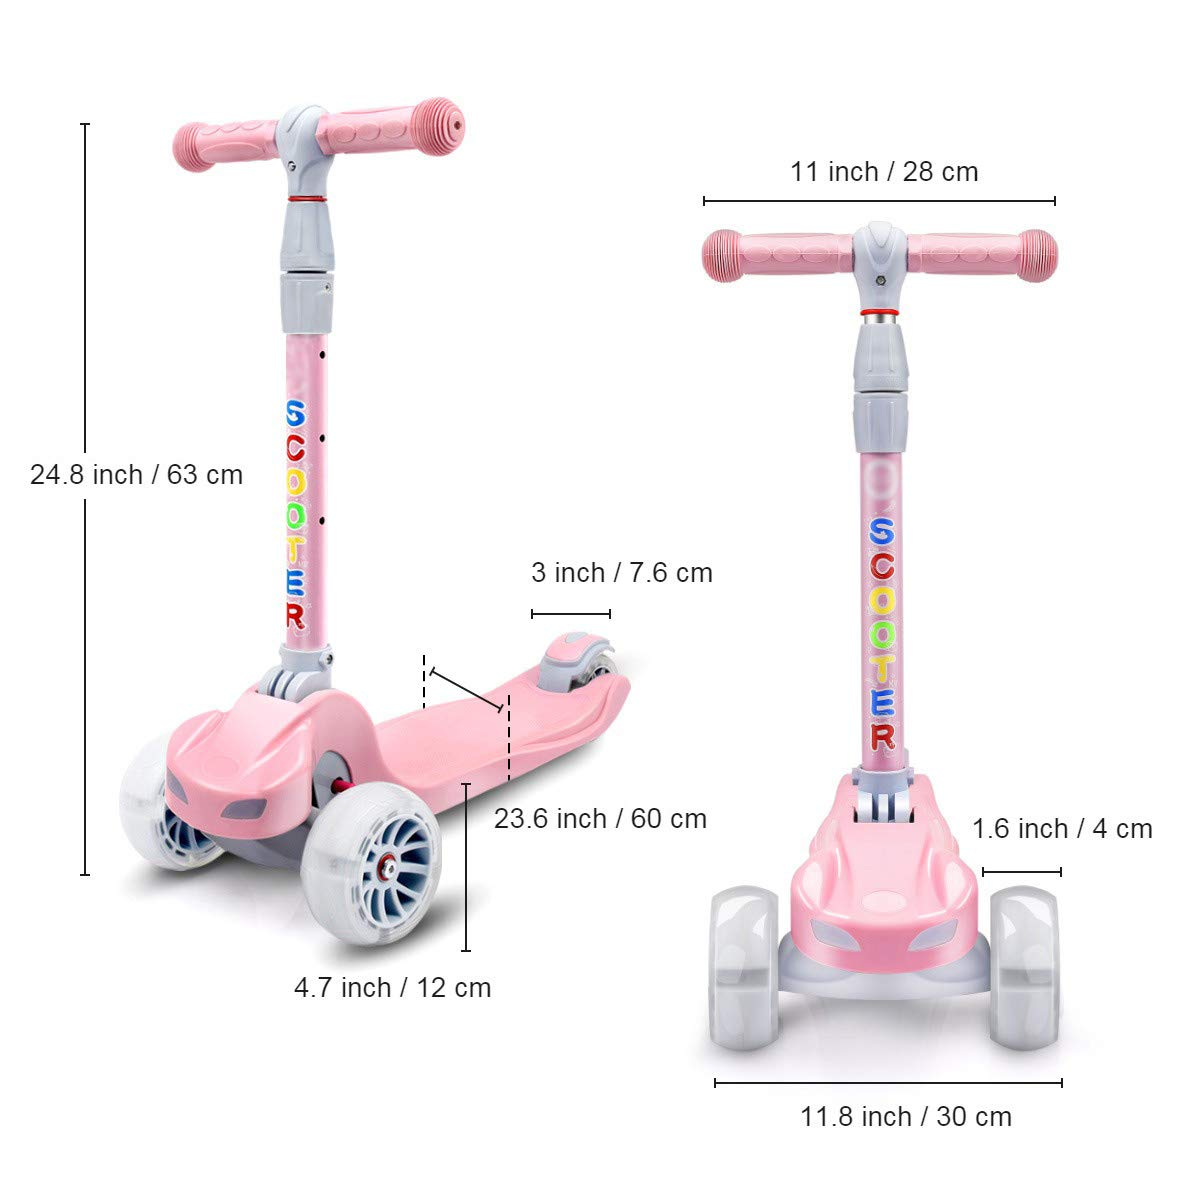 YX Kick Scooter for Kids 3 Wheel Toddlers Scooter 4 Adjustable Height Lean to Steer with PU Flashing Wheels for Boys Girls from 3 to 12 Years Old (Pink) by YX